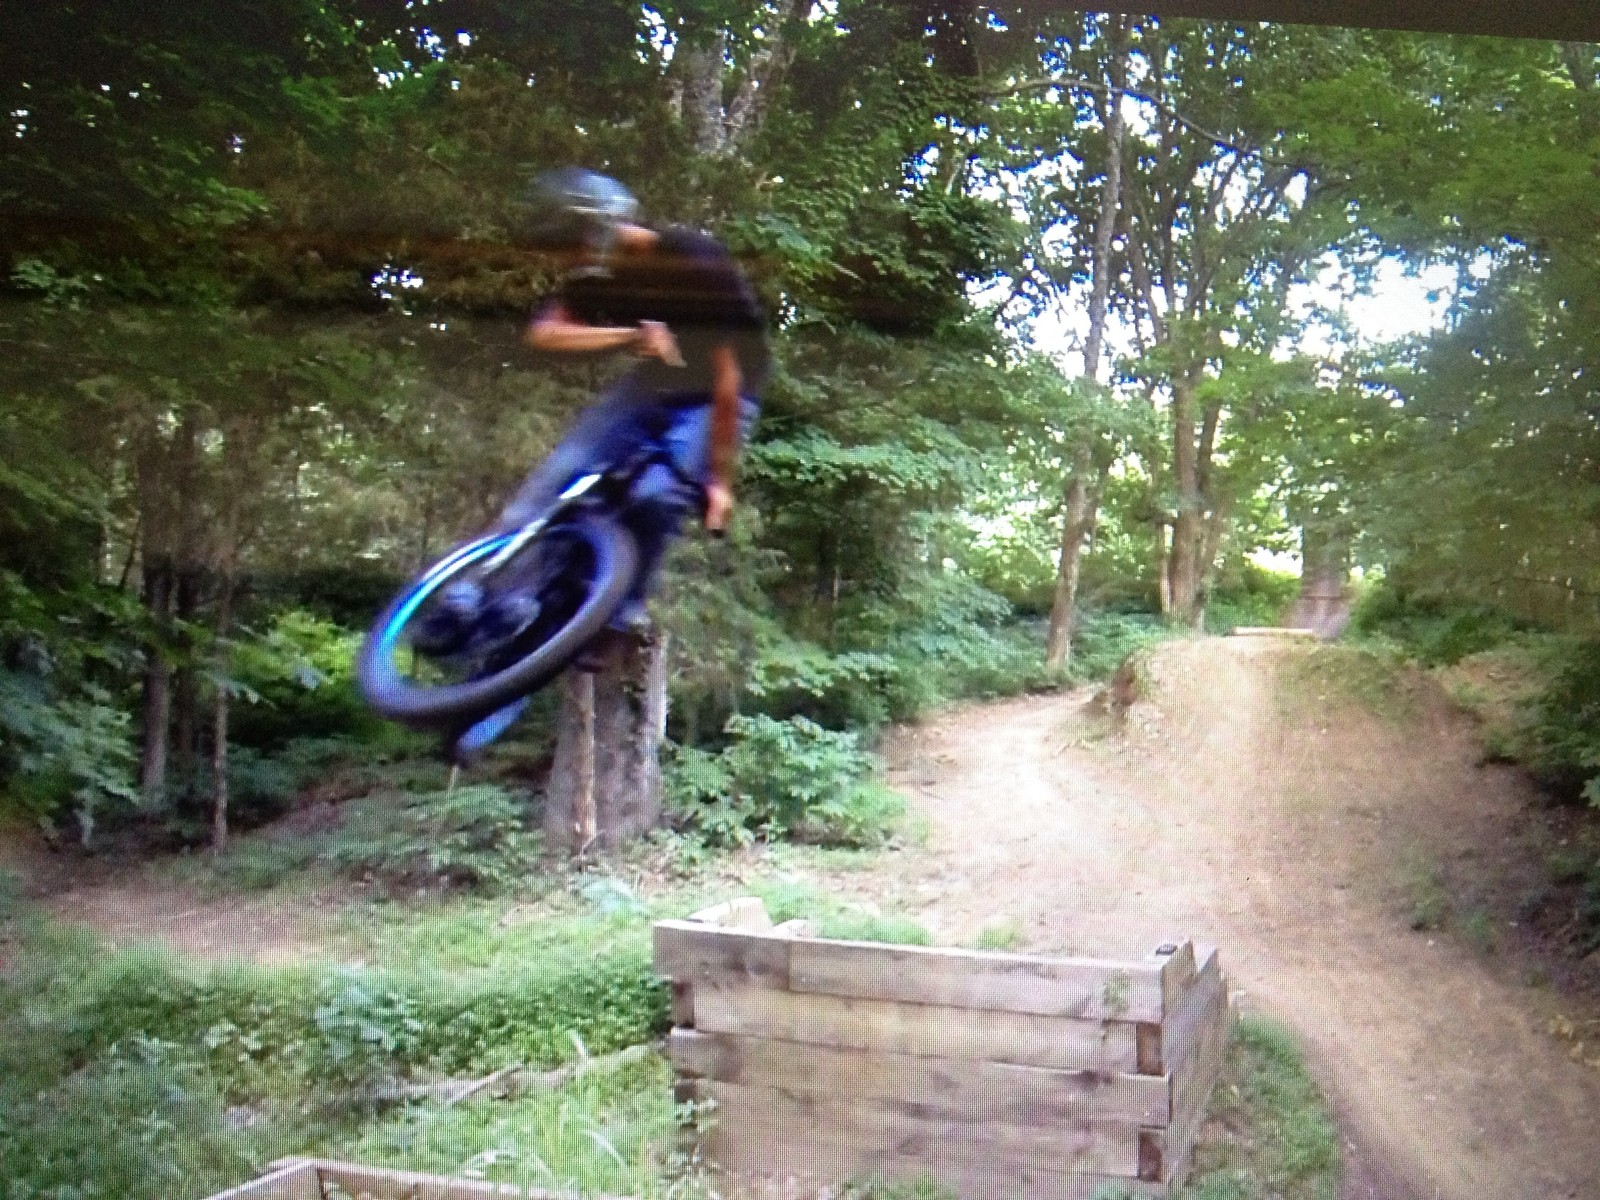 Moto whip - mark94 - Mountain Biking Pictures - Vital MTB